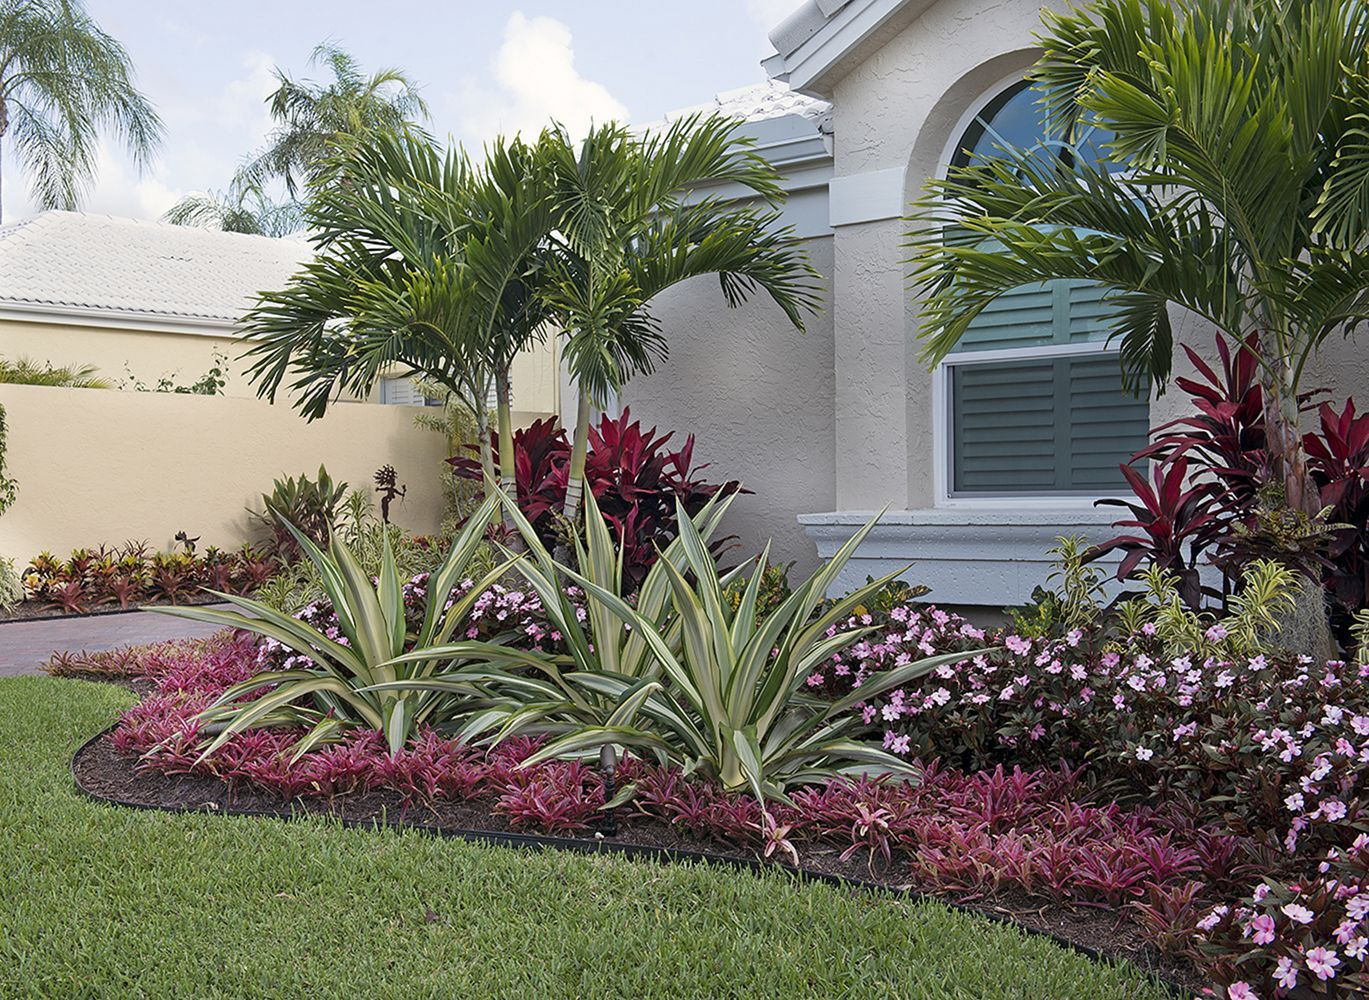 15 Beautiful Tropical Front Yard Landscape Ideas To Make Your Home More Awesome Freshouz Com Tropical Landscape Design Front Yard Landscaping Design Florida Landscaping